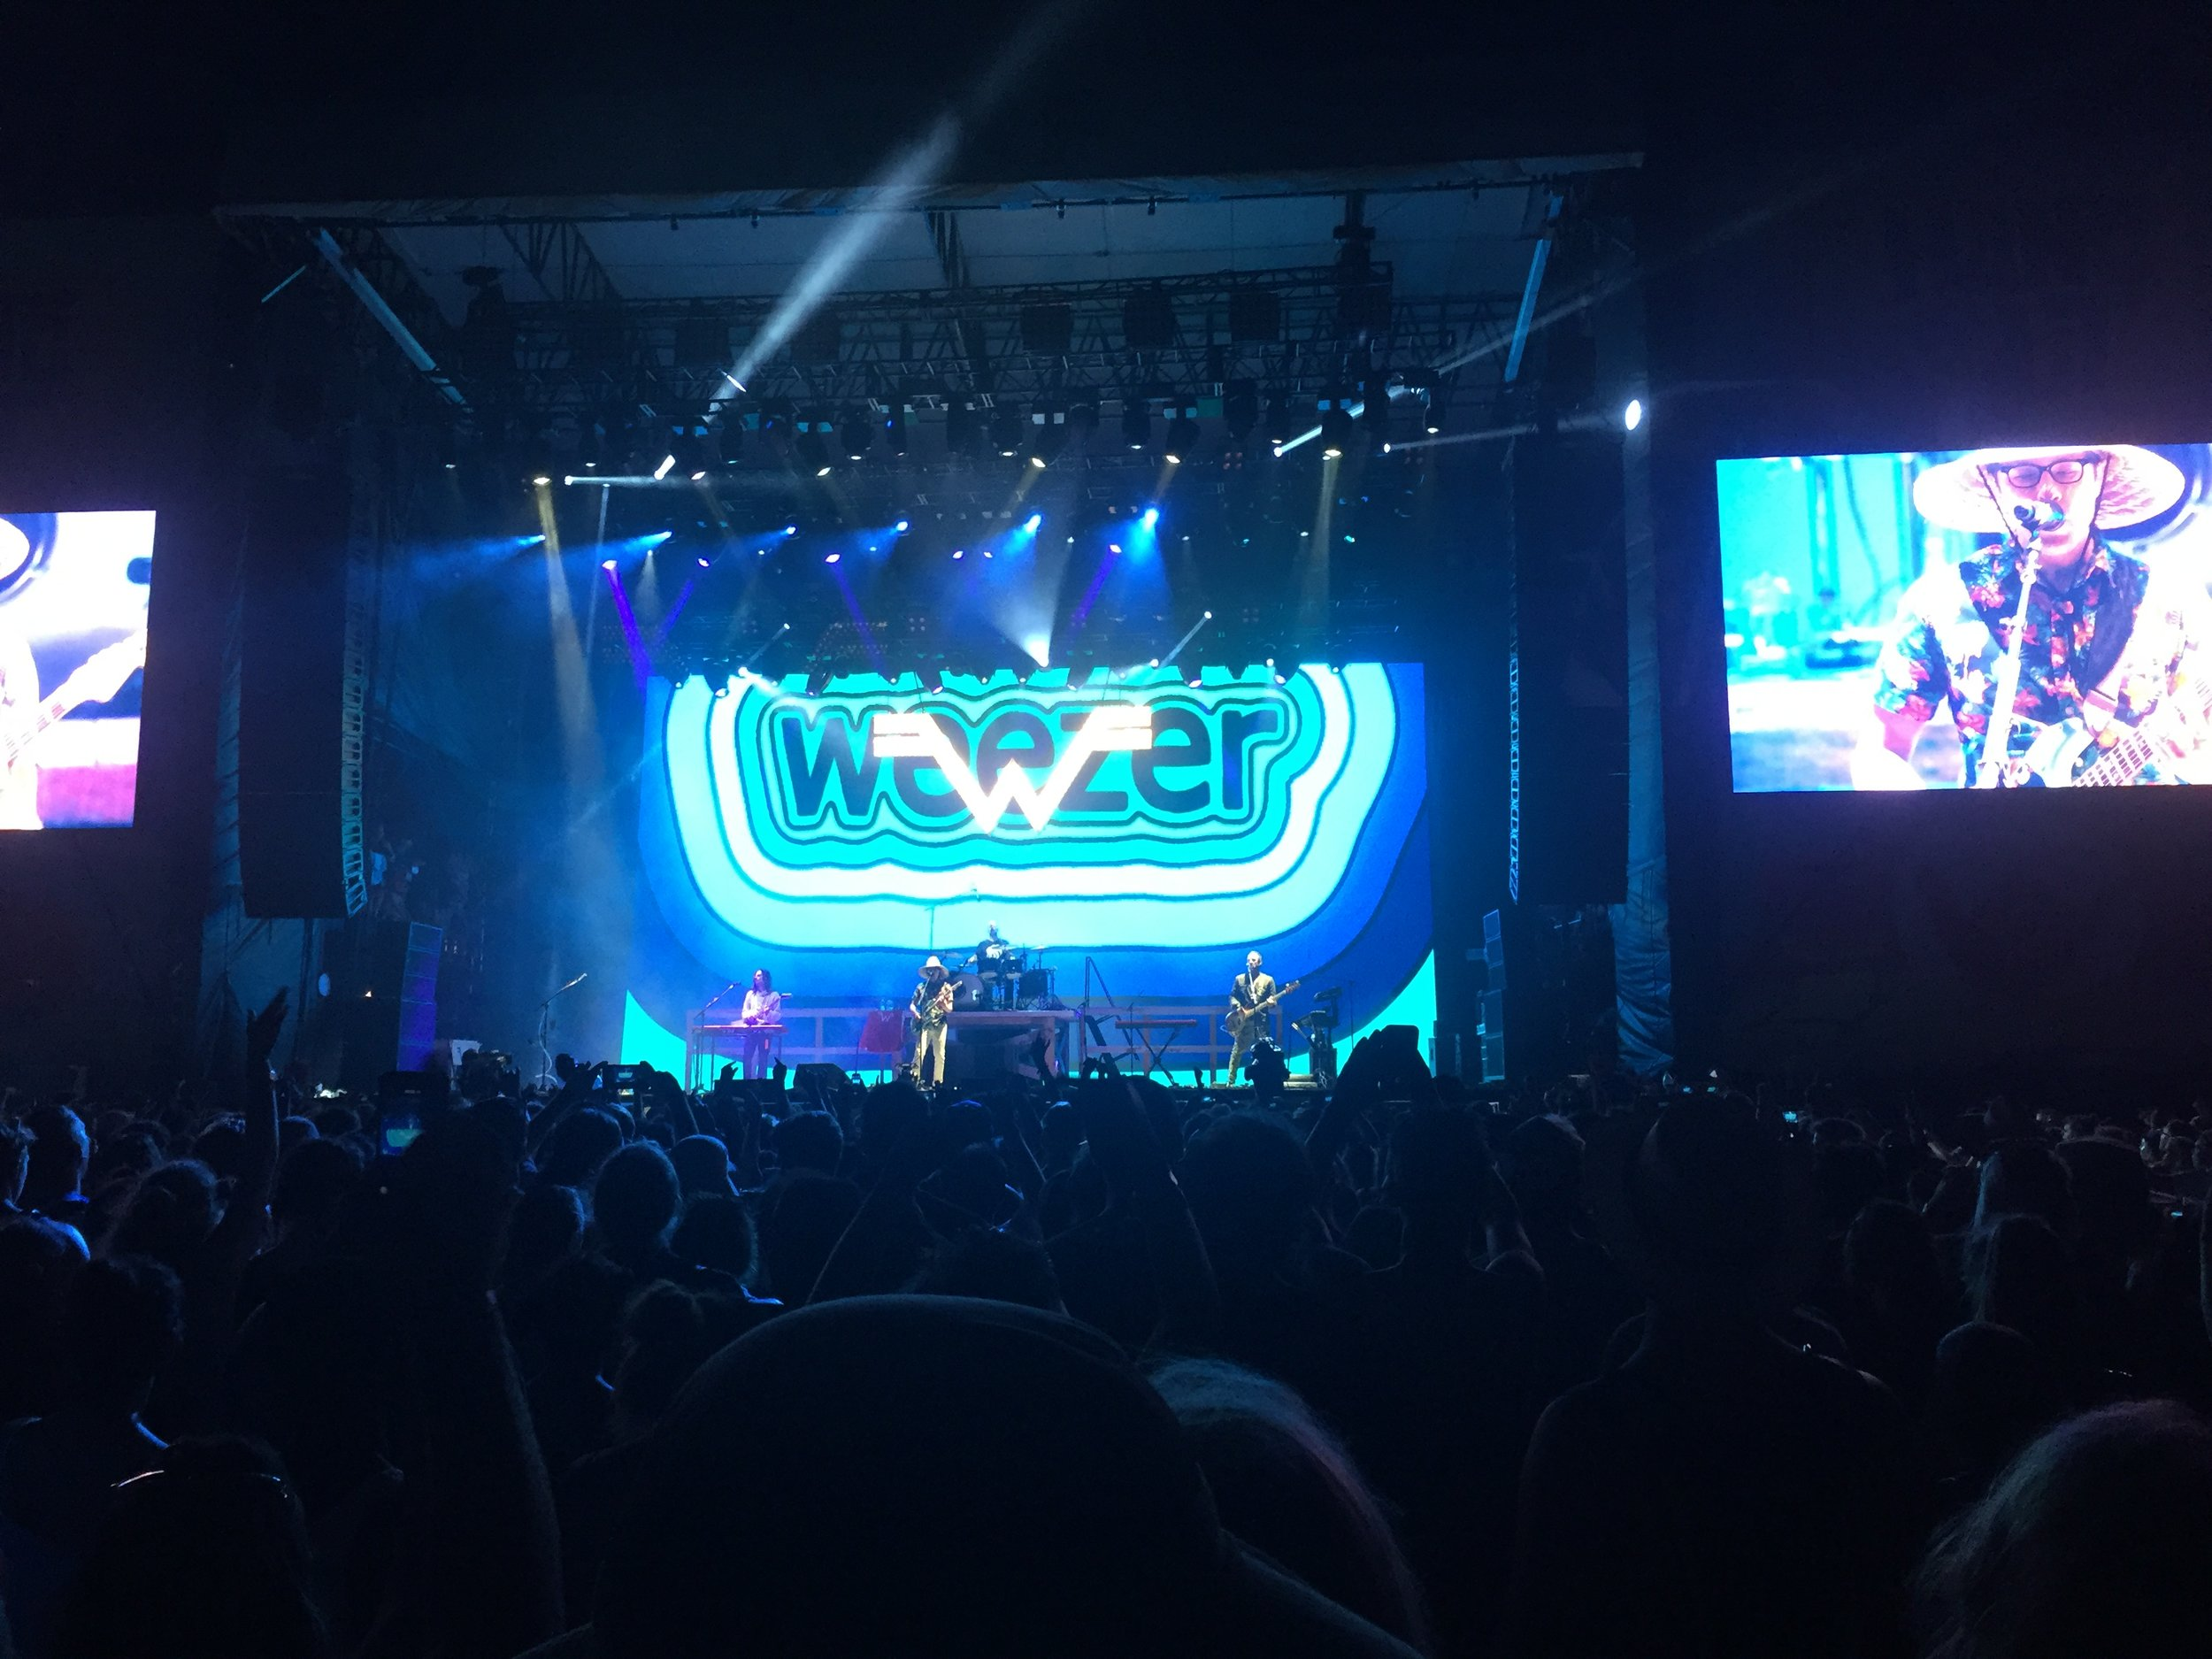 Weezer played an incedible show. They surprised the heck out of me with how good they were.